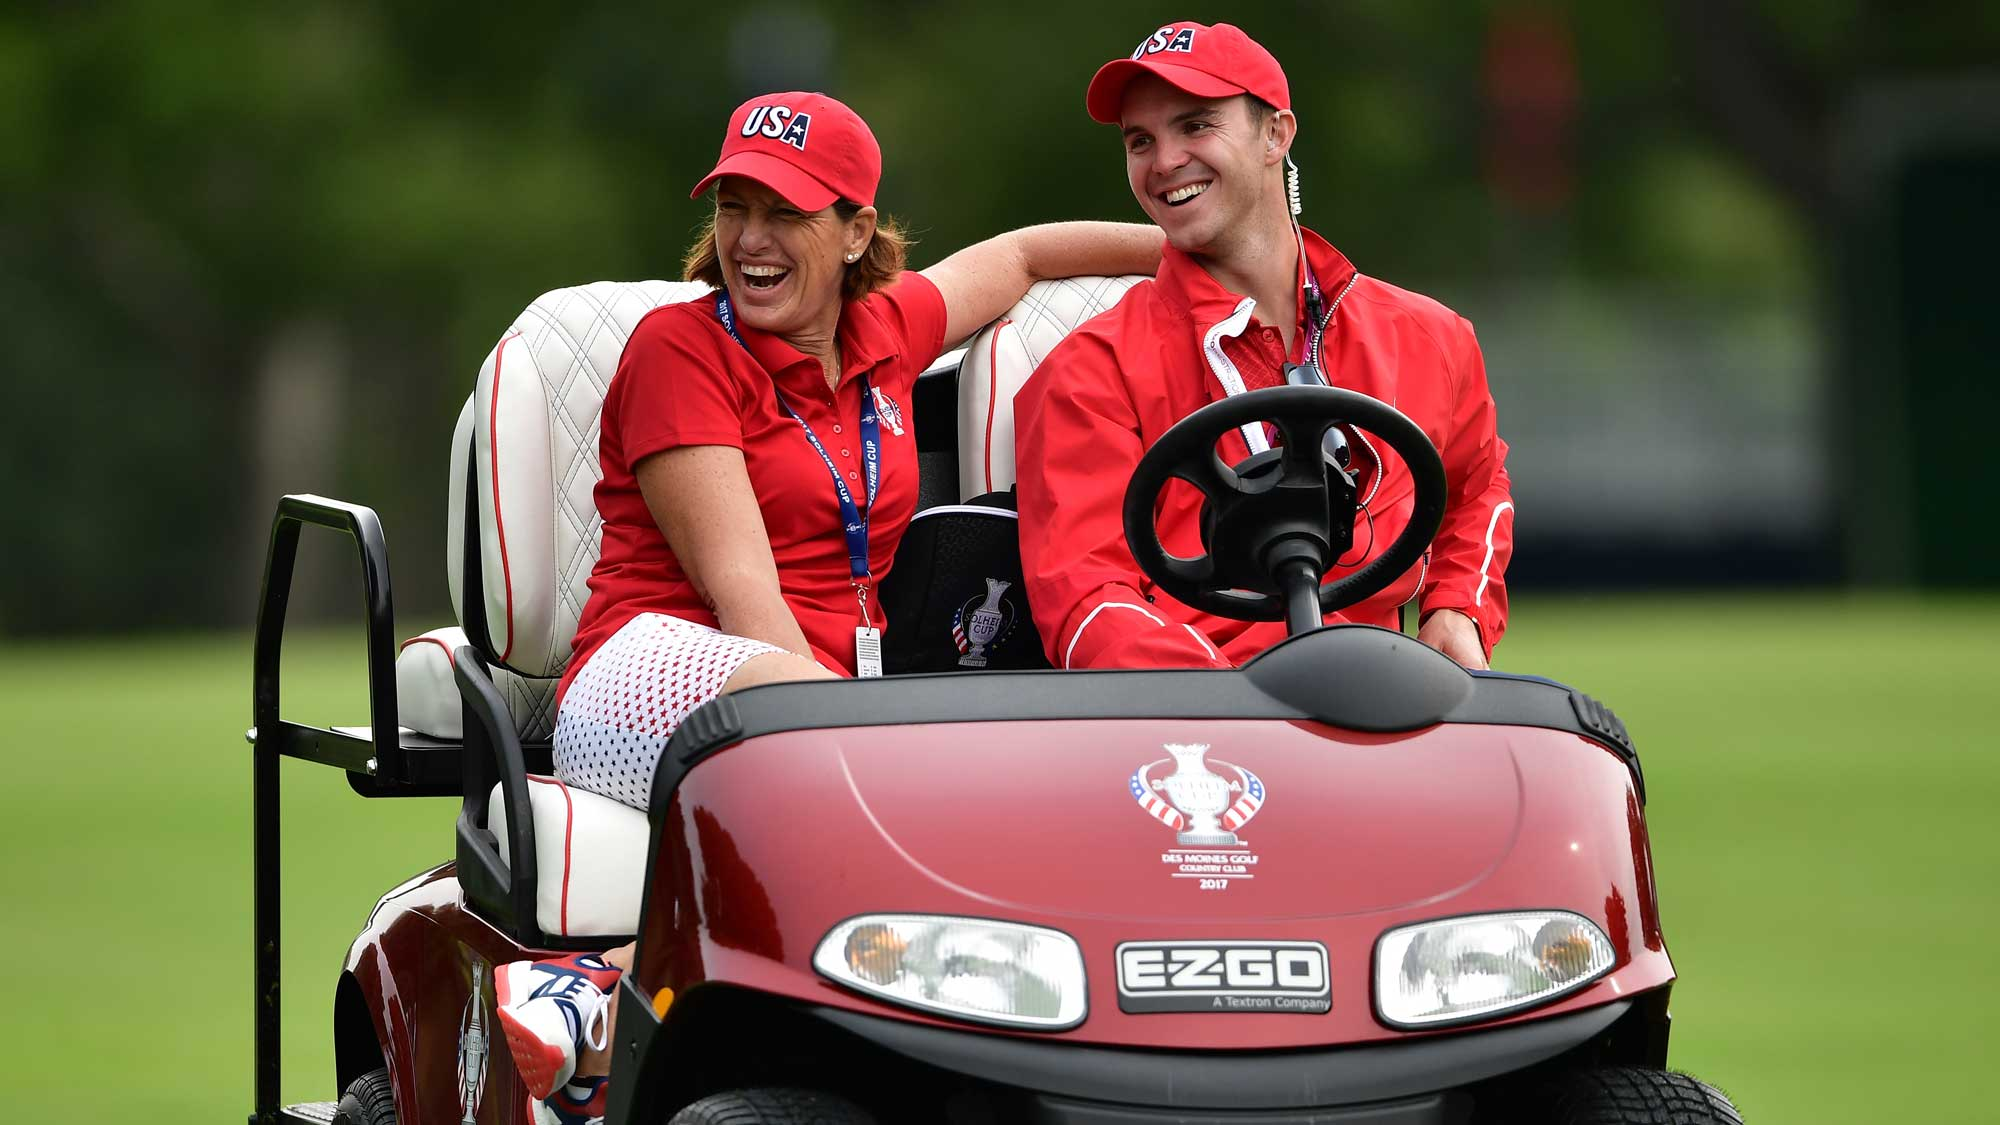 Inkster Learned from 2015, Europe Ready for Challenge and More from Solheim Cup